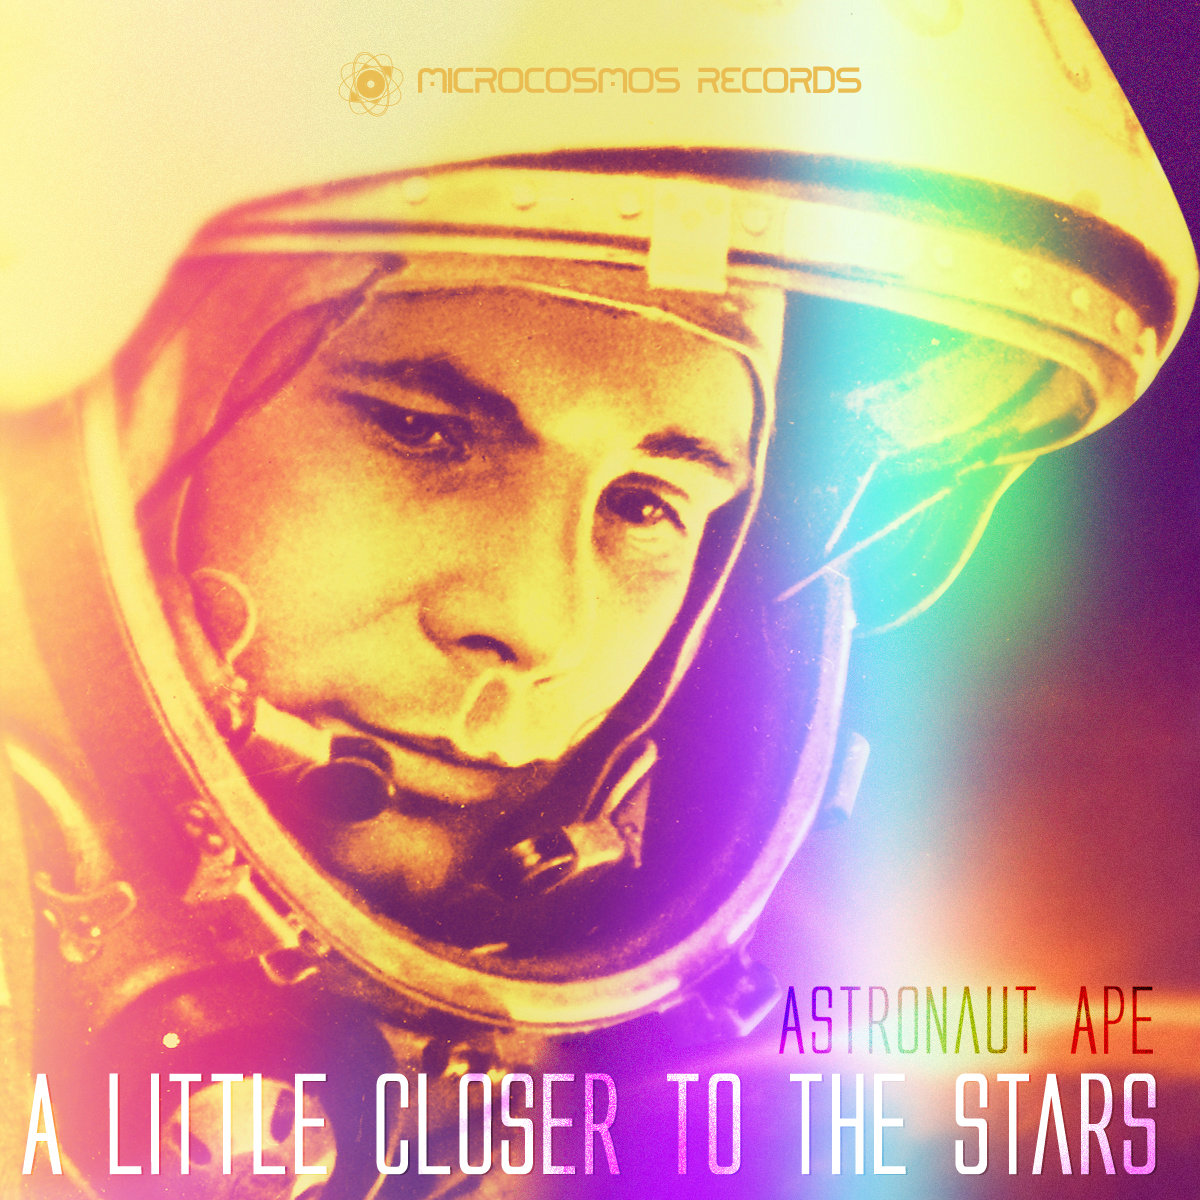 Astronaut Ape - A Little Closer To The Stars